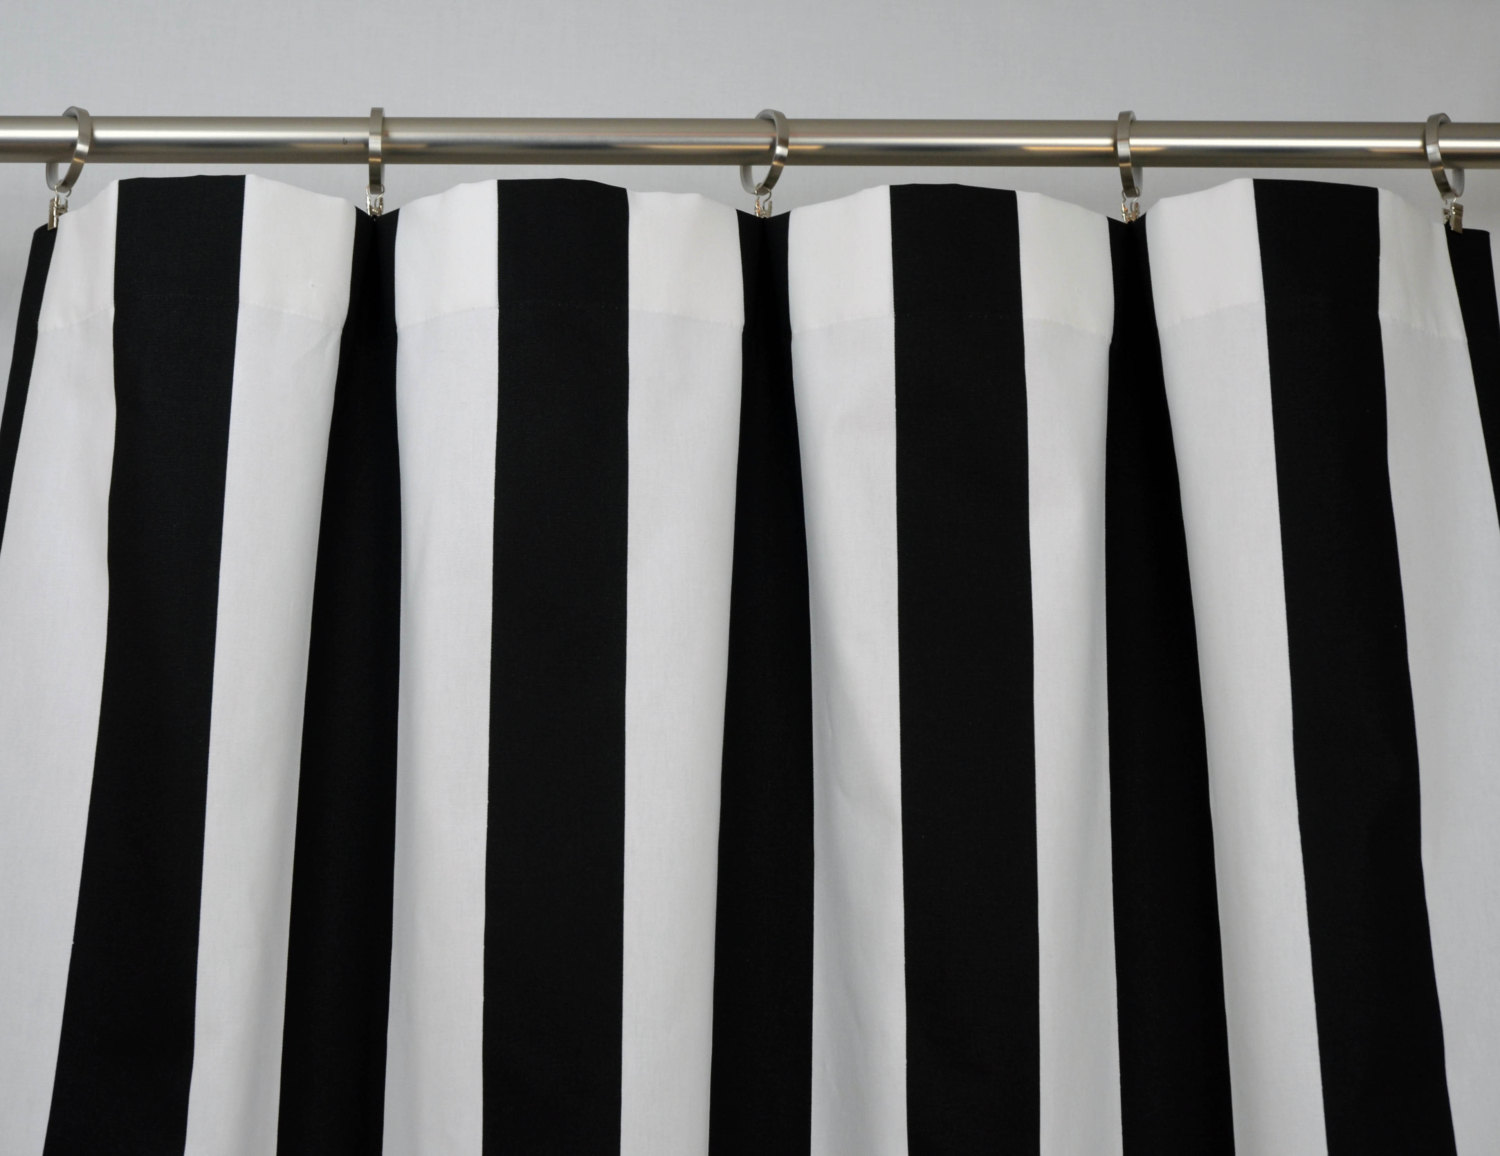 horizontal striped curtains in black and white with iron curtain rings